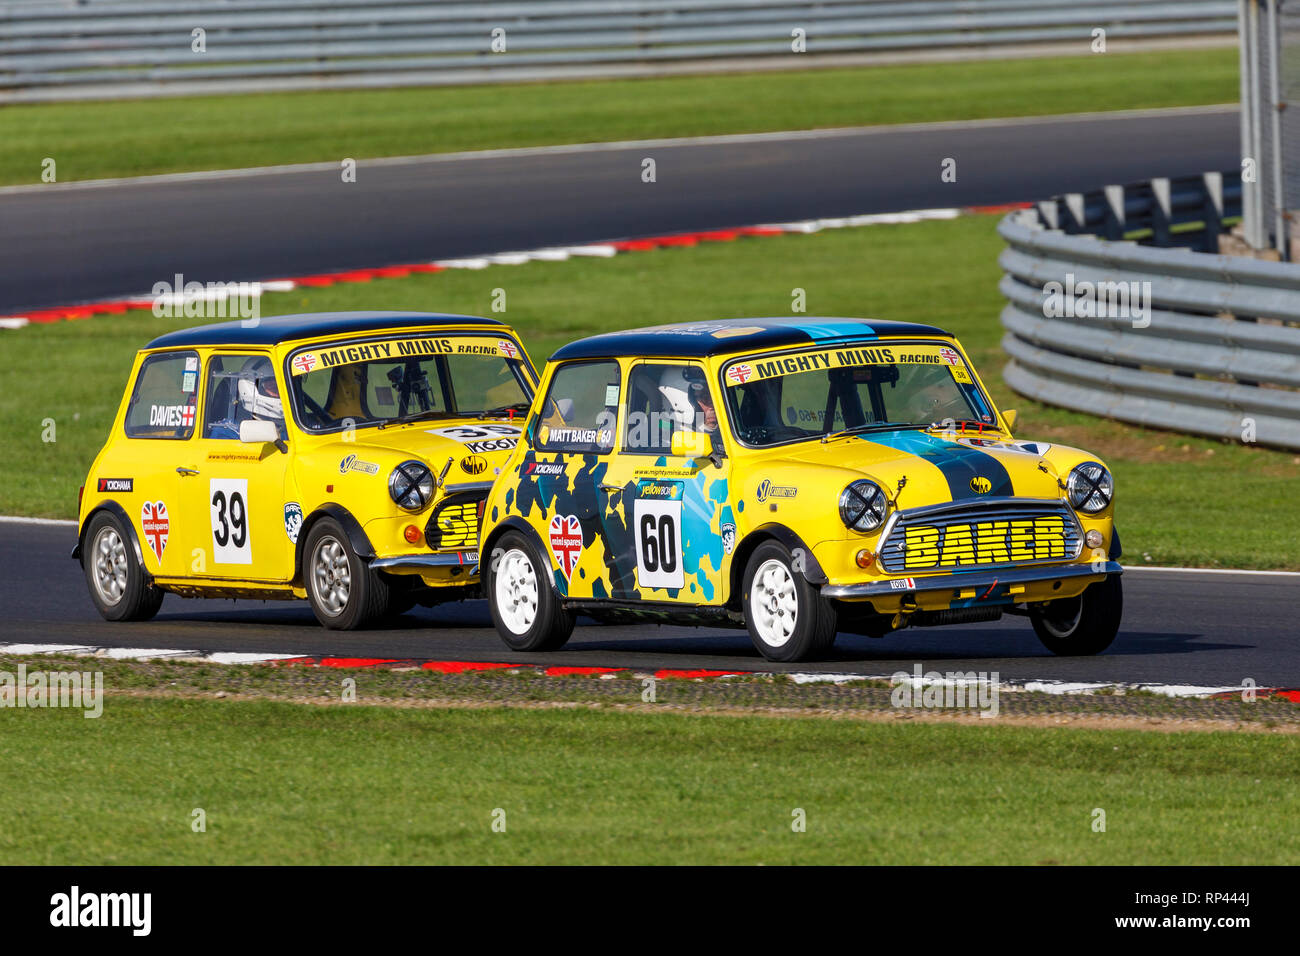 Matthew Baker and Mark Davies battle it out in the Mighty Minis Championship race at Snetterton 2018, Norfolk, UK. - Stock Image